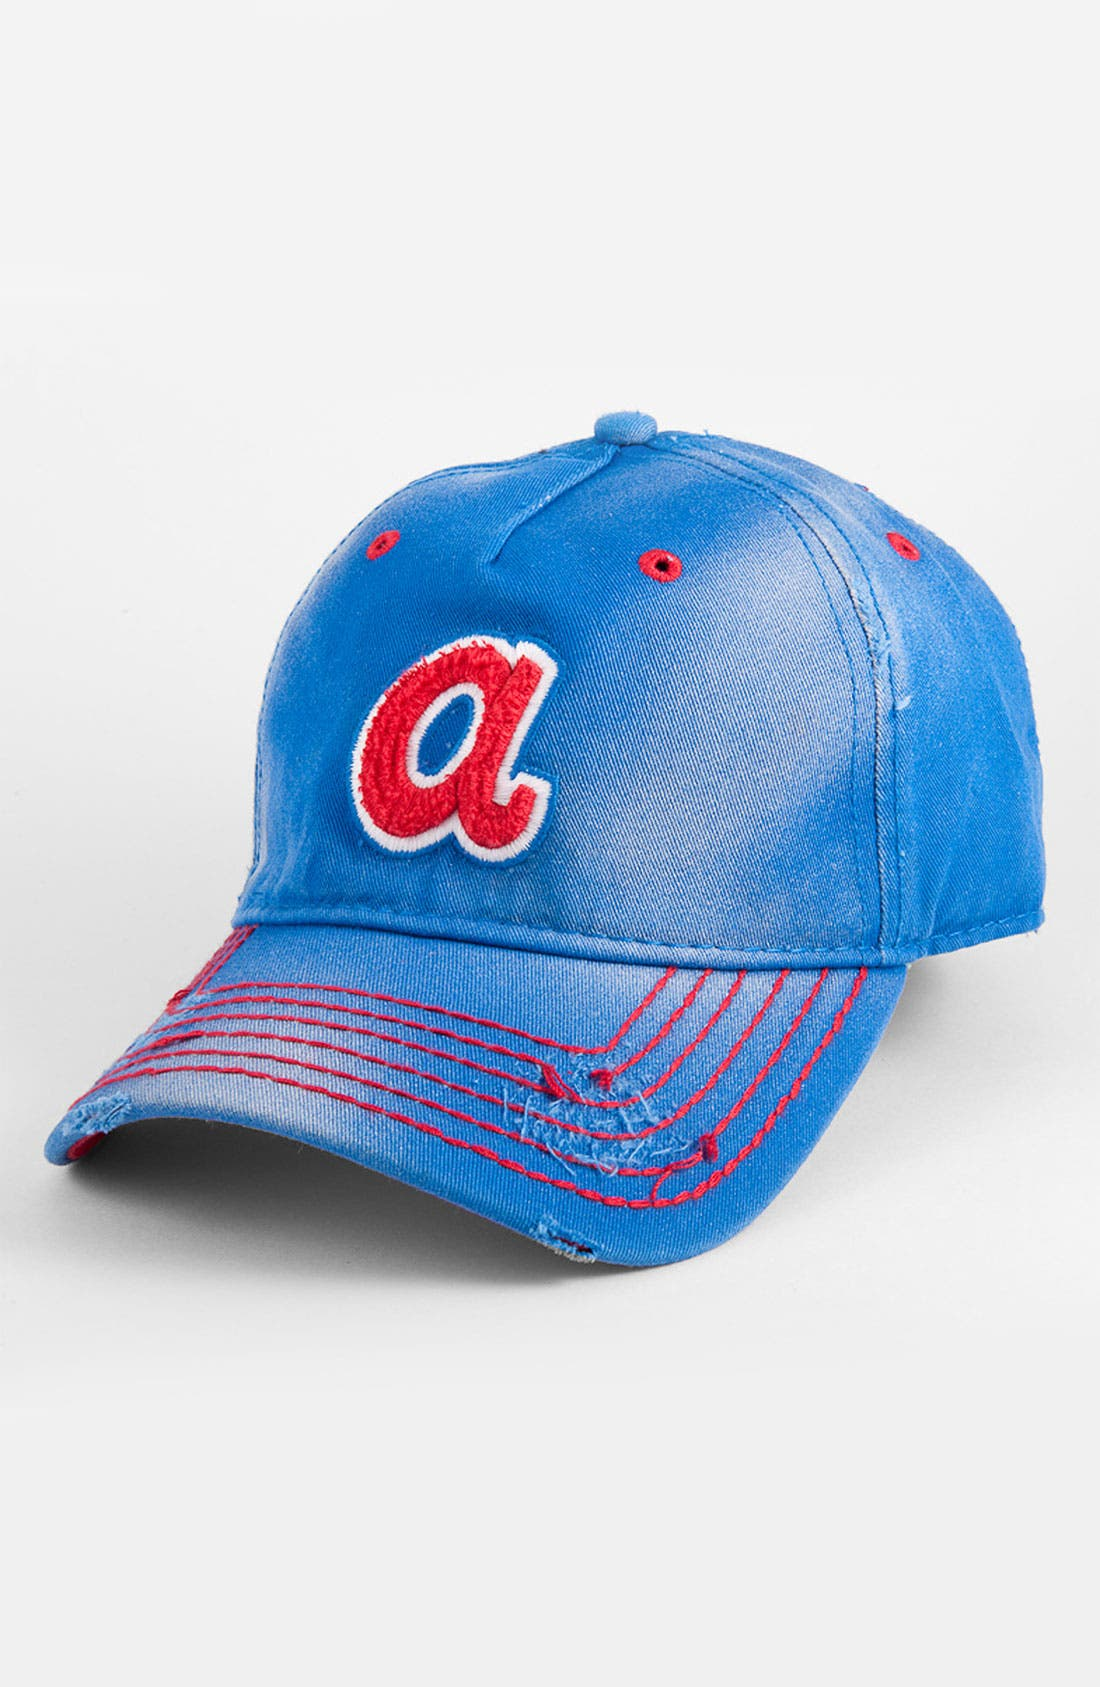 Main Image - American Needle 'Braves' Baseball Cap